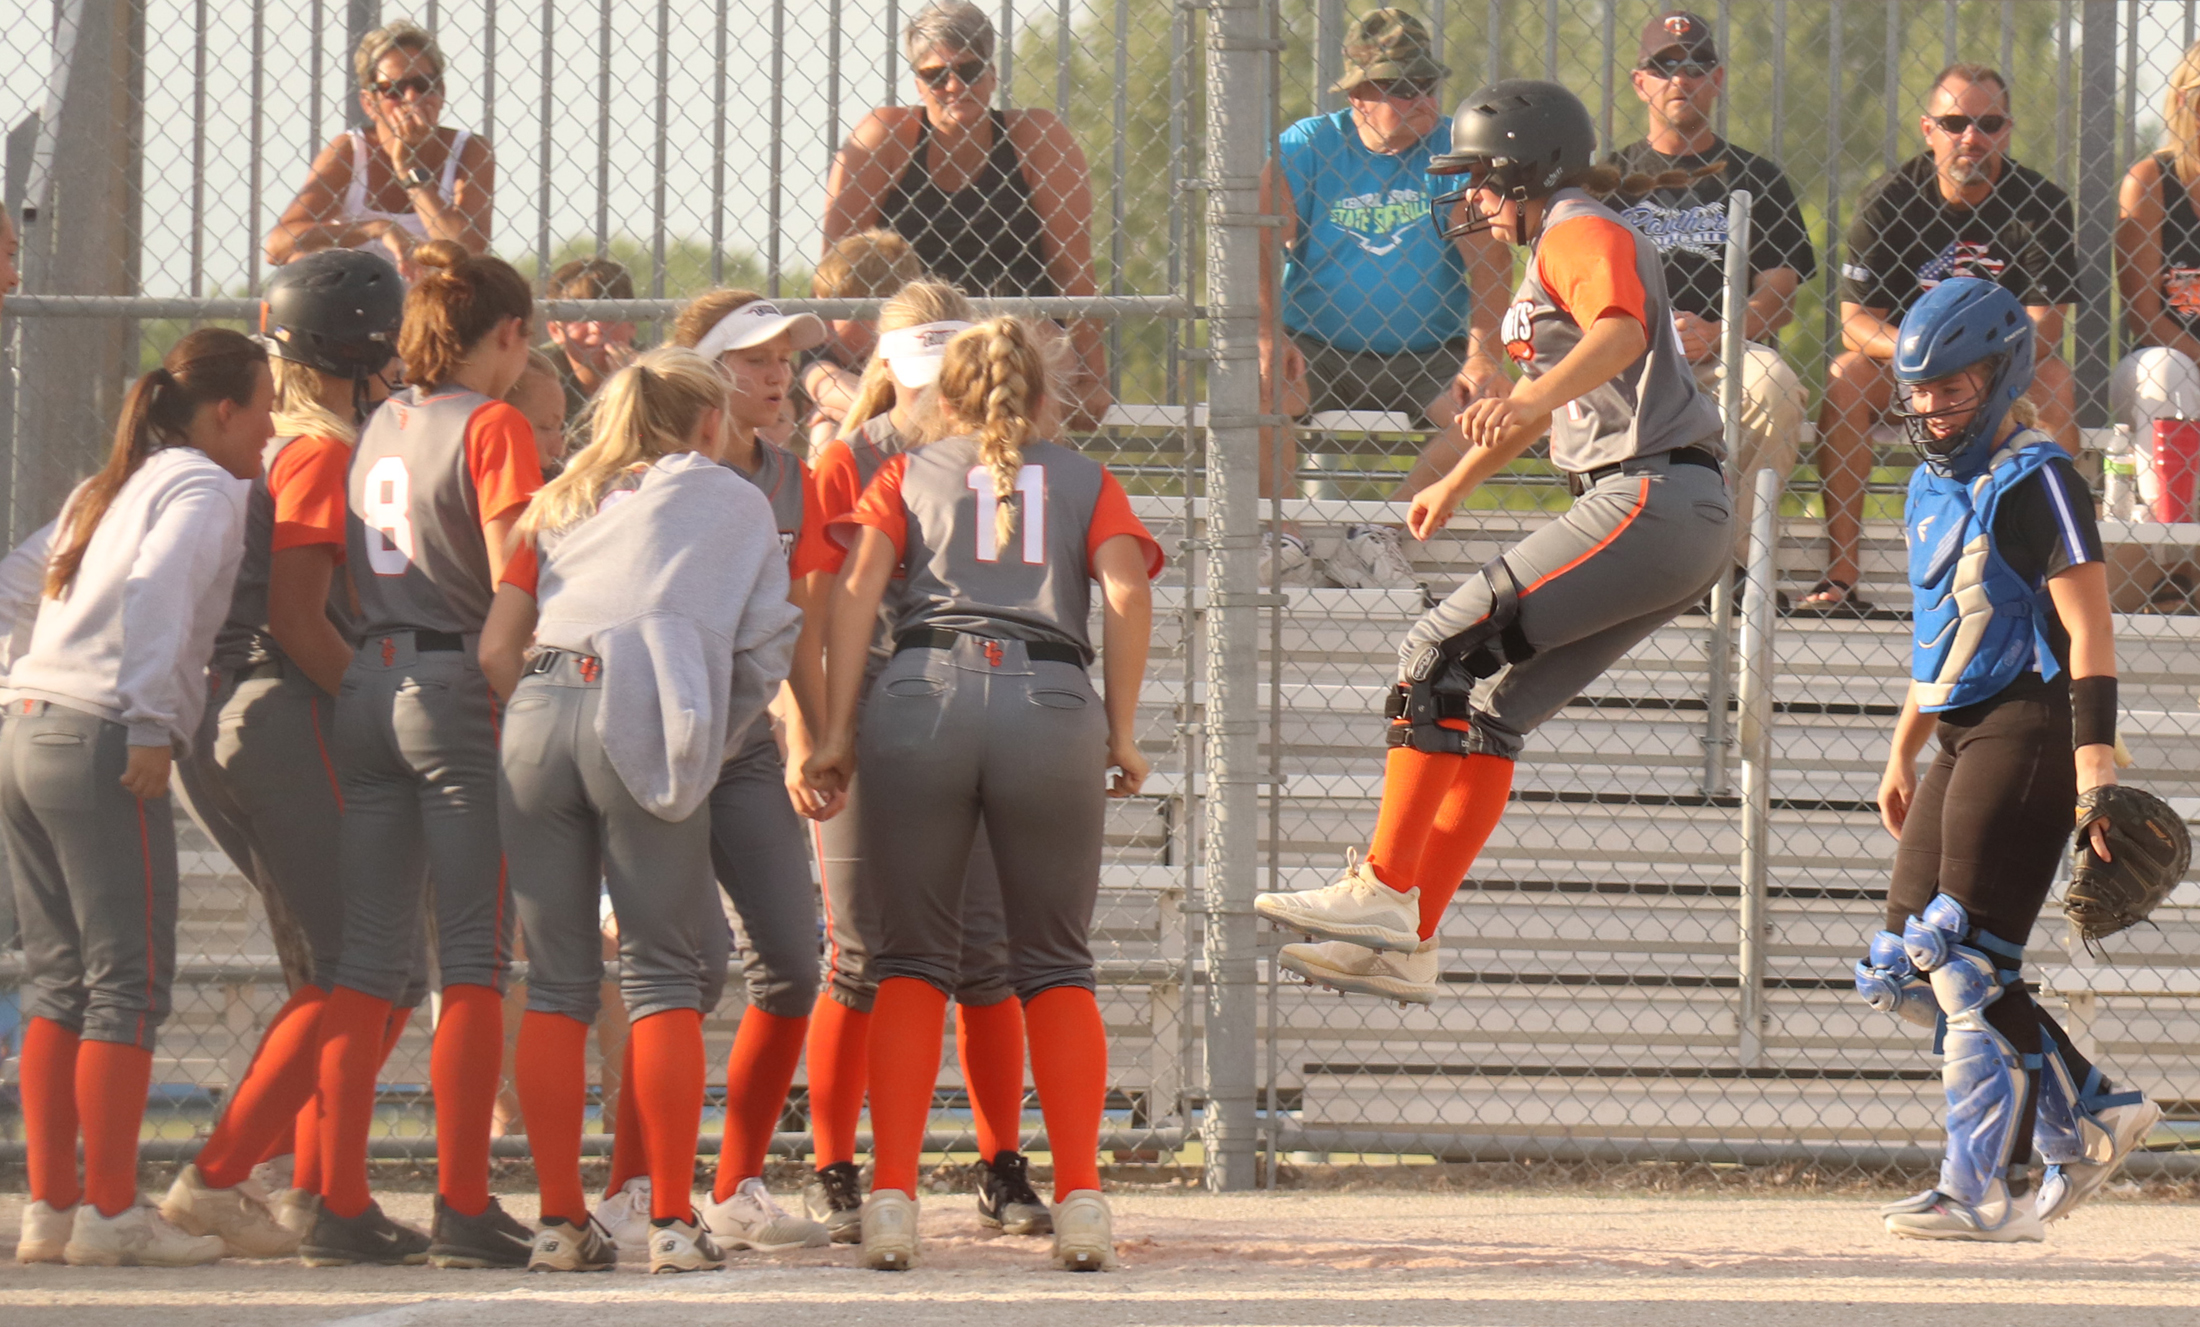 After win streak stopped by Panthers, Comets rebound with DH sweep over Go-Hawks